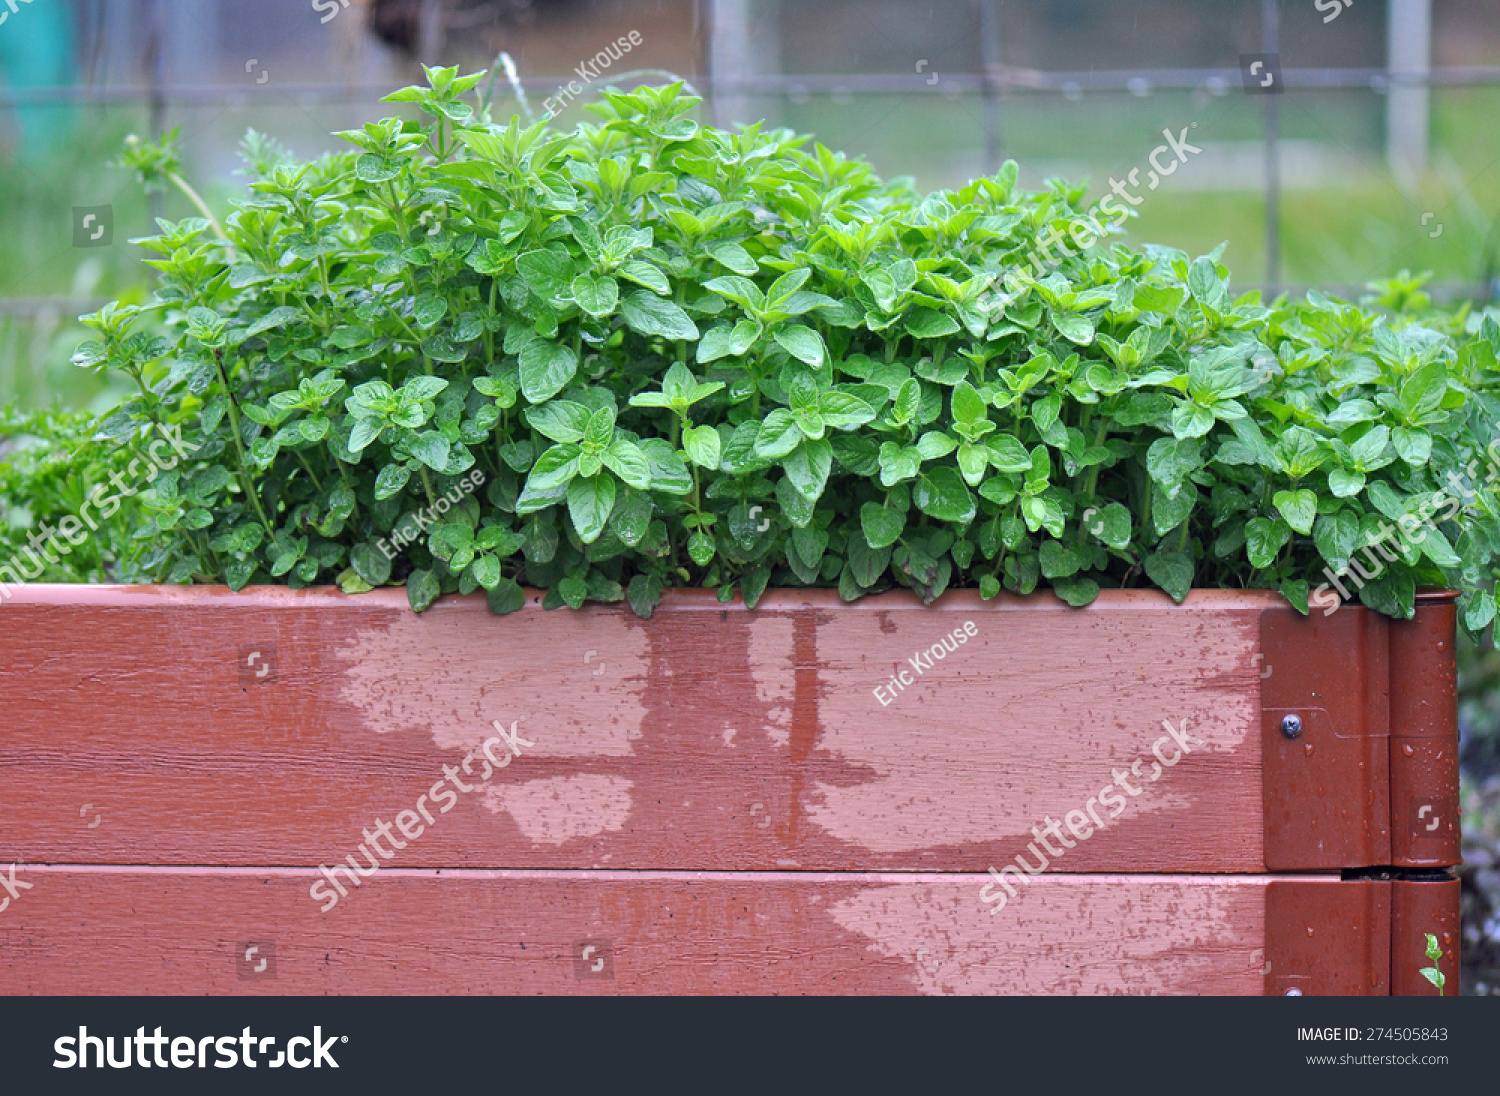 Container Garden With Fresh Mint In Chapel Hill North Carolina Stock Photo 274505843  Shutterstock